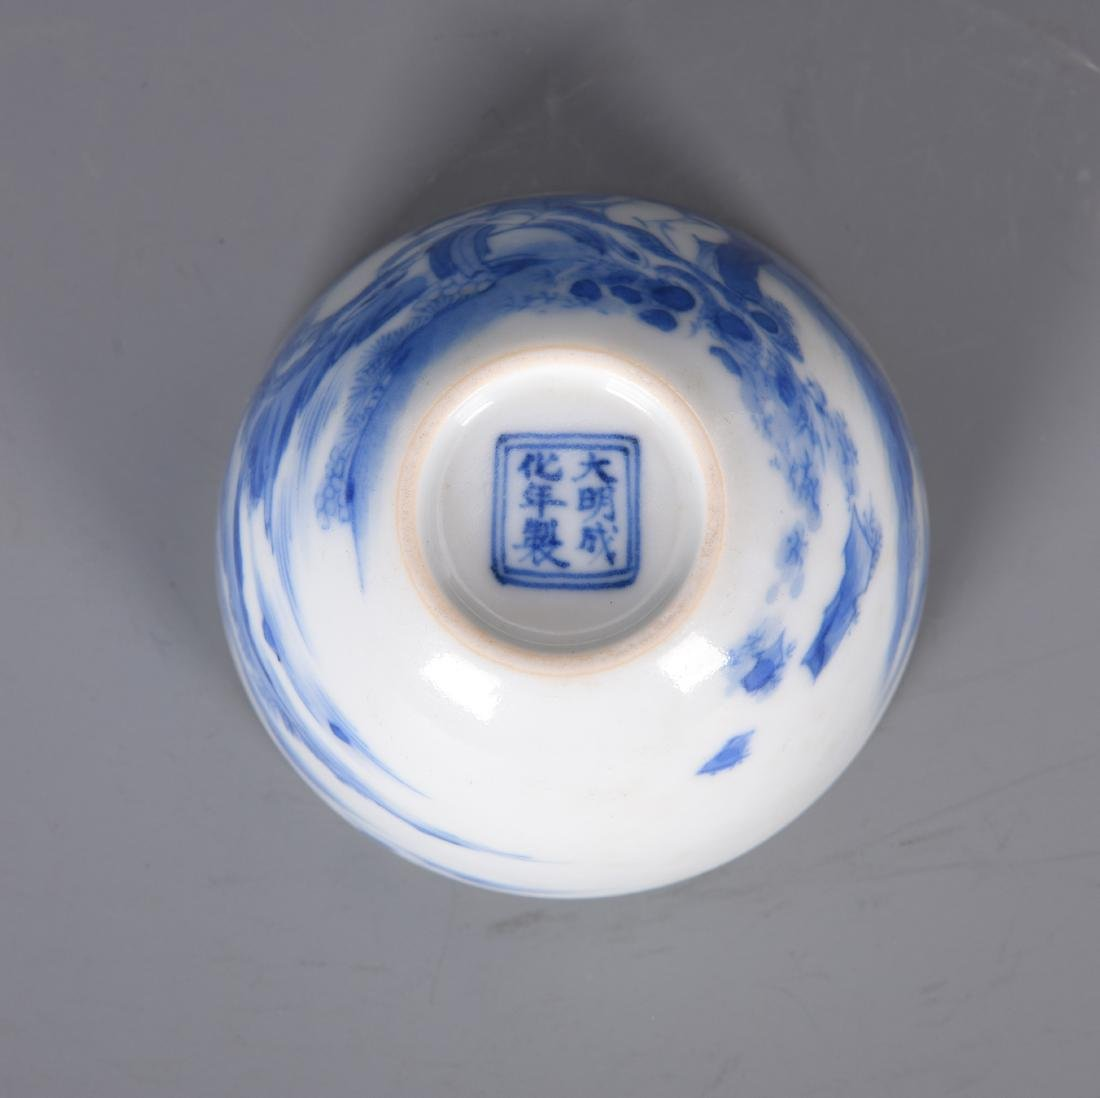 Blue and White Porcelain Cup with Mark - 9